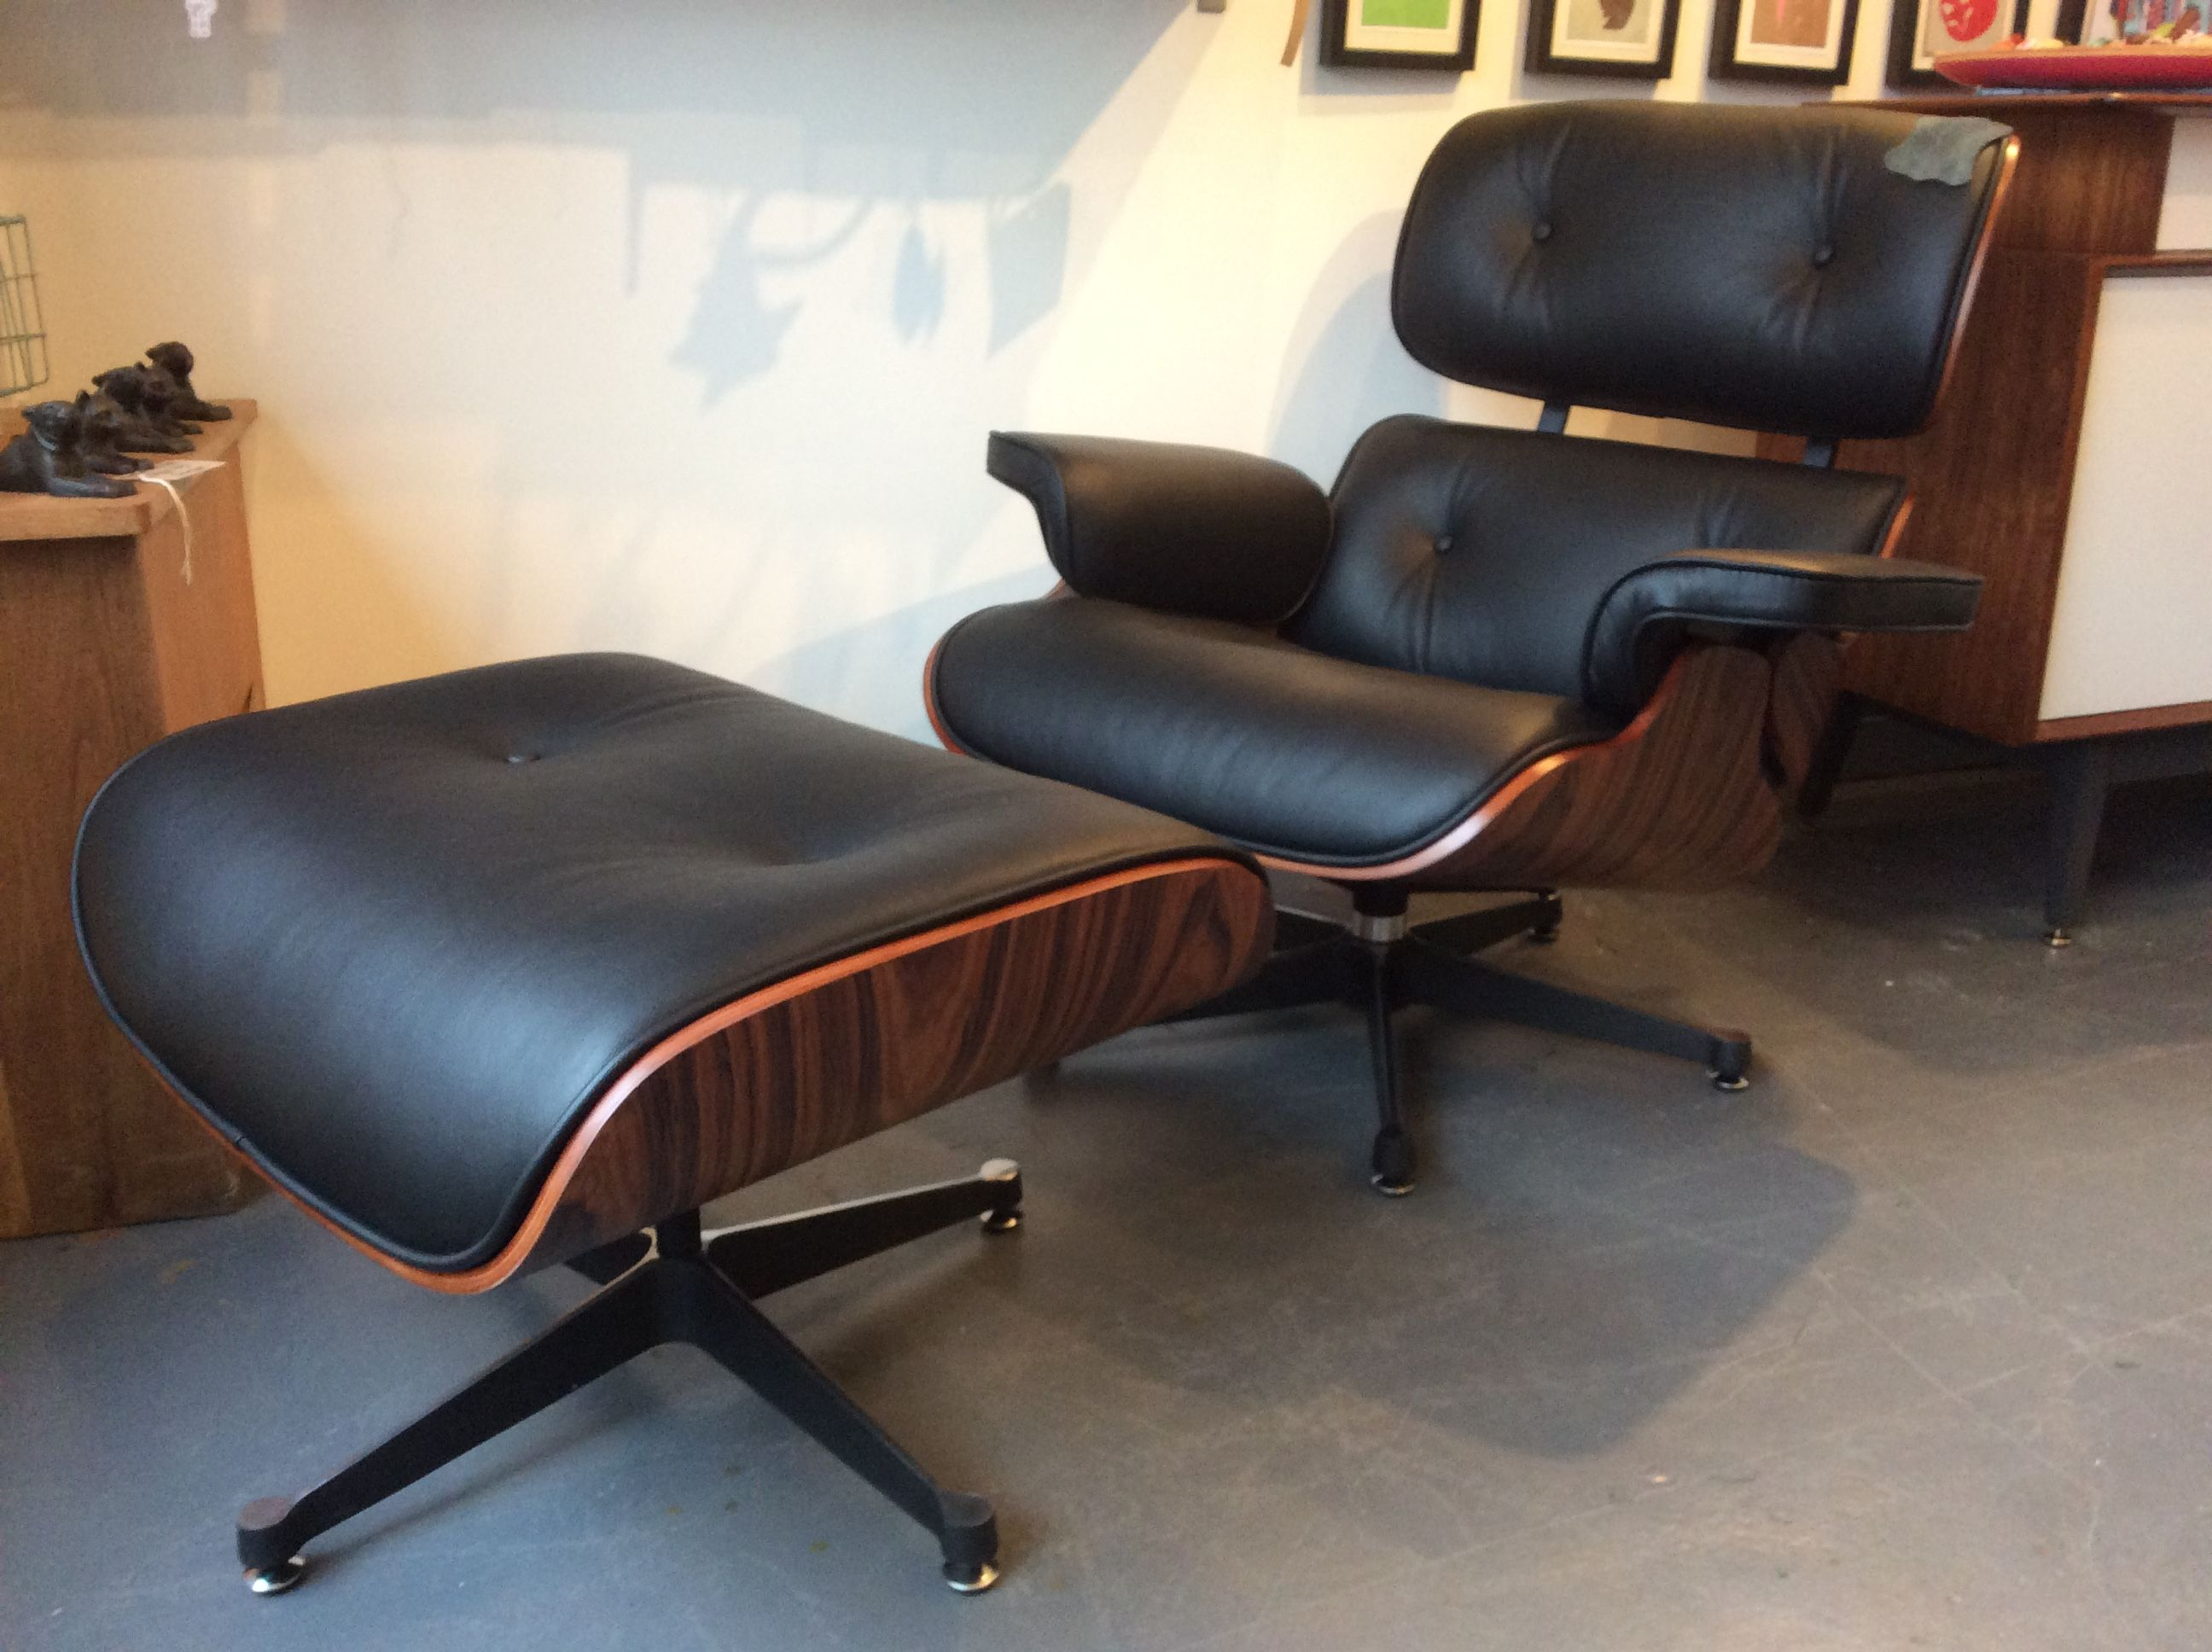 The Quintissential Modern Classic. Black Italian leather and Rosewood Lounge Chair & Ottoman, inspired by Eames, £800.00 at Kingdom Furnishings#interiordesign #homewares #vintagefurniture #midcentury